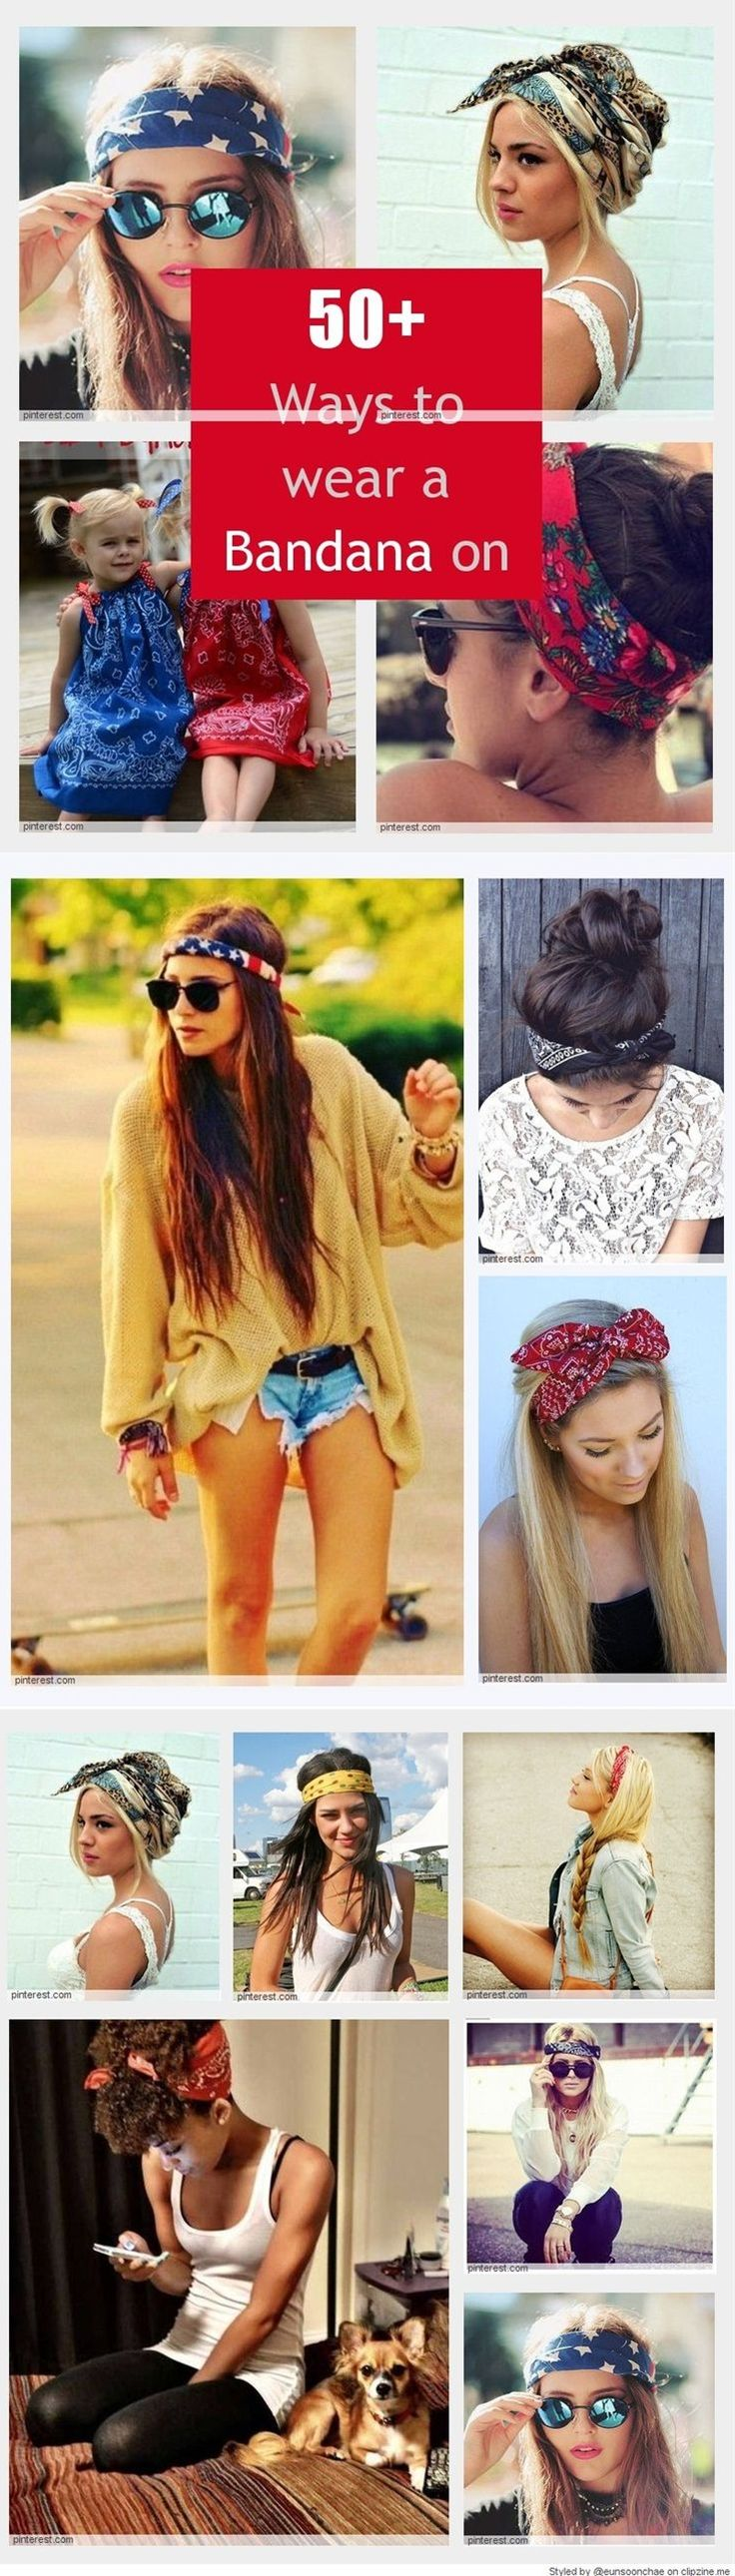 bandanas just add flare plus they're so handy for those dirty hair days!